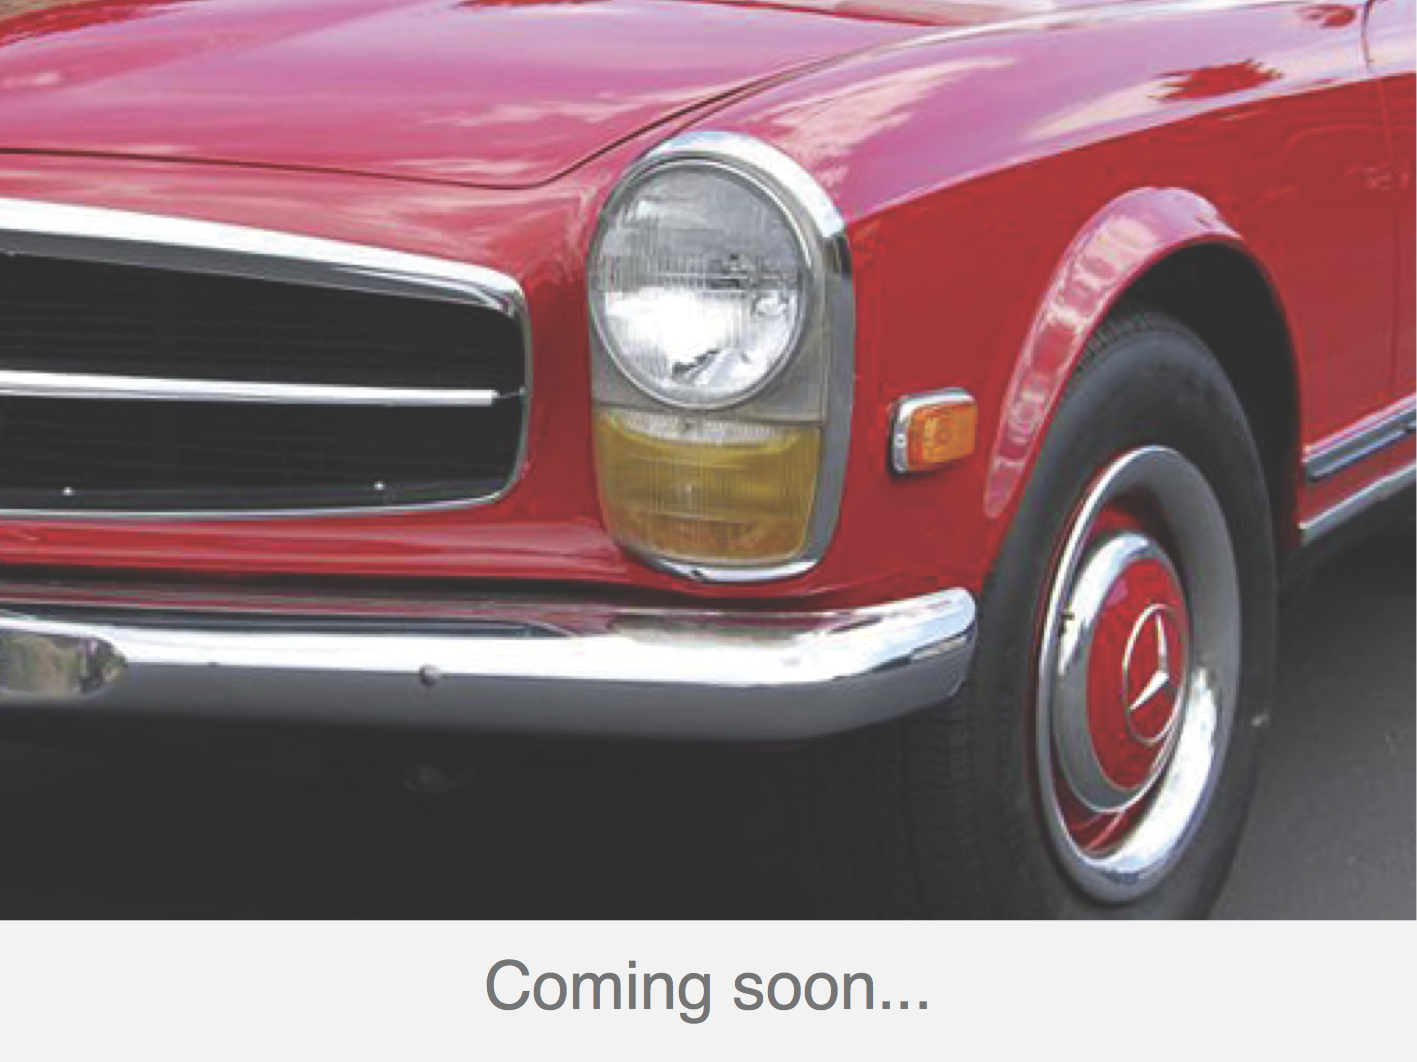 230 SL signalrot-braun coming soon